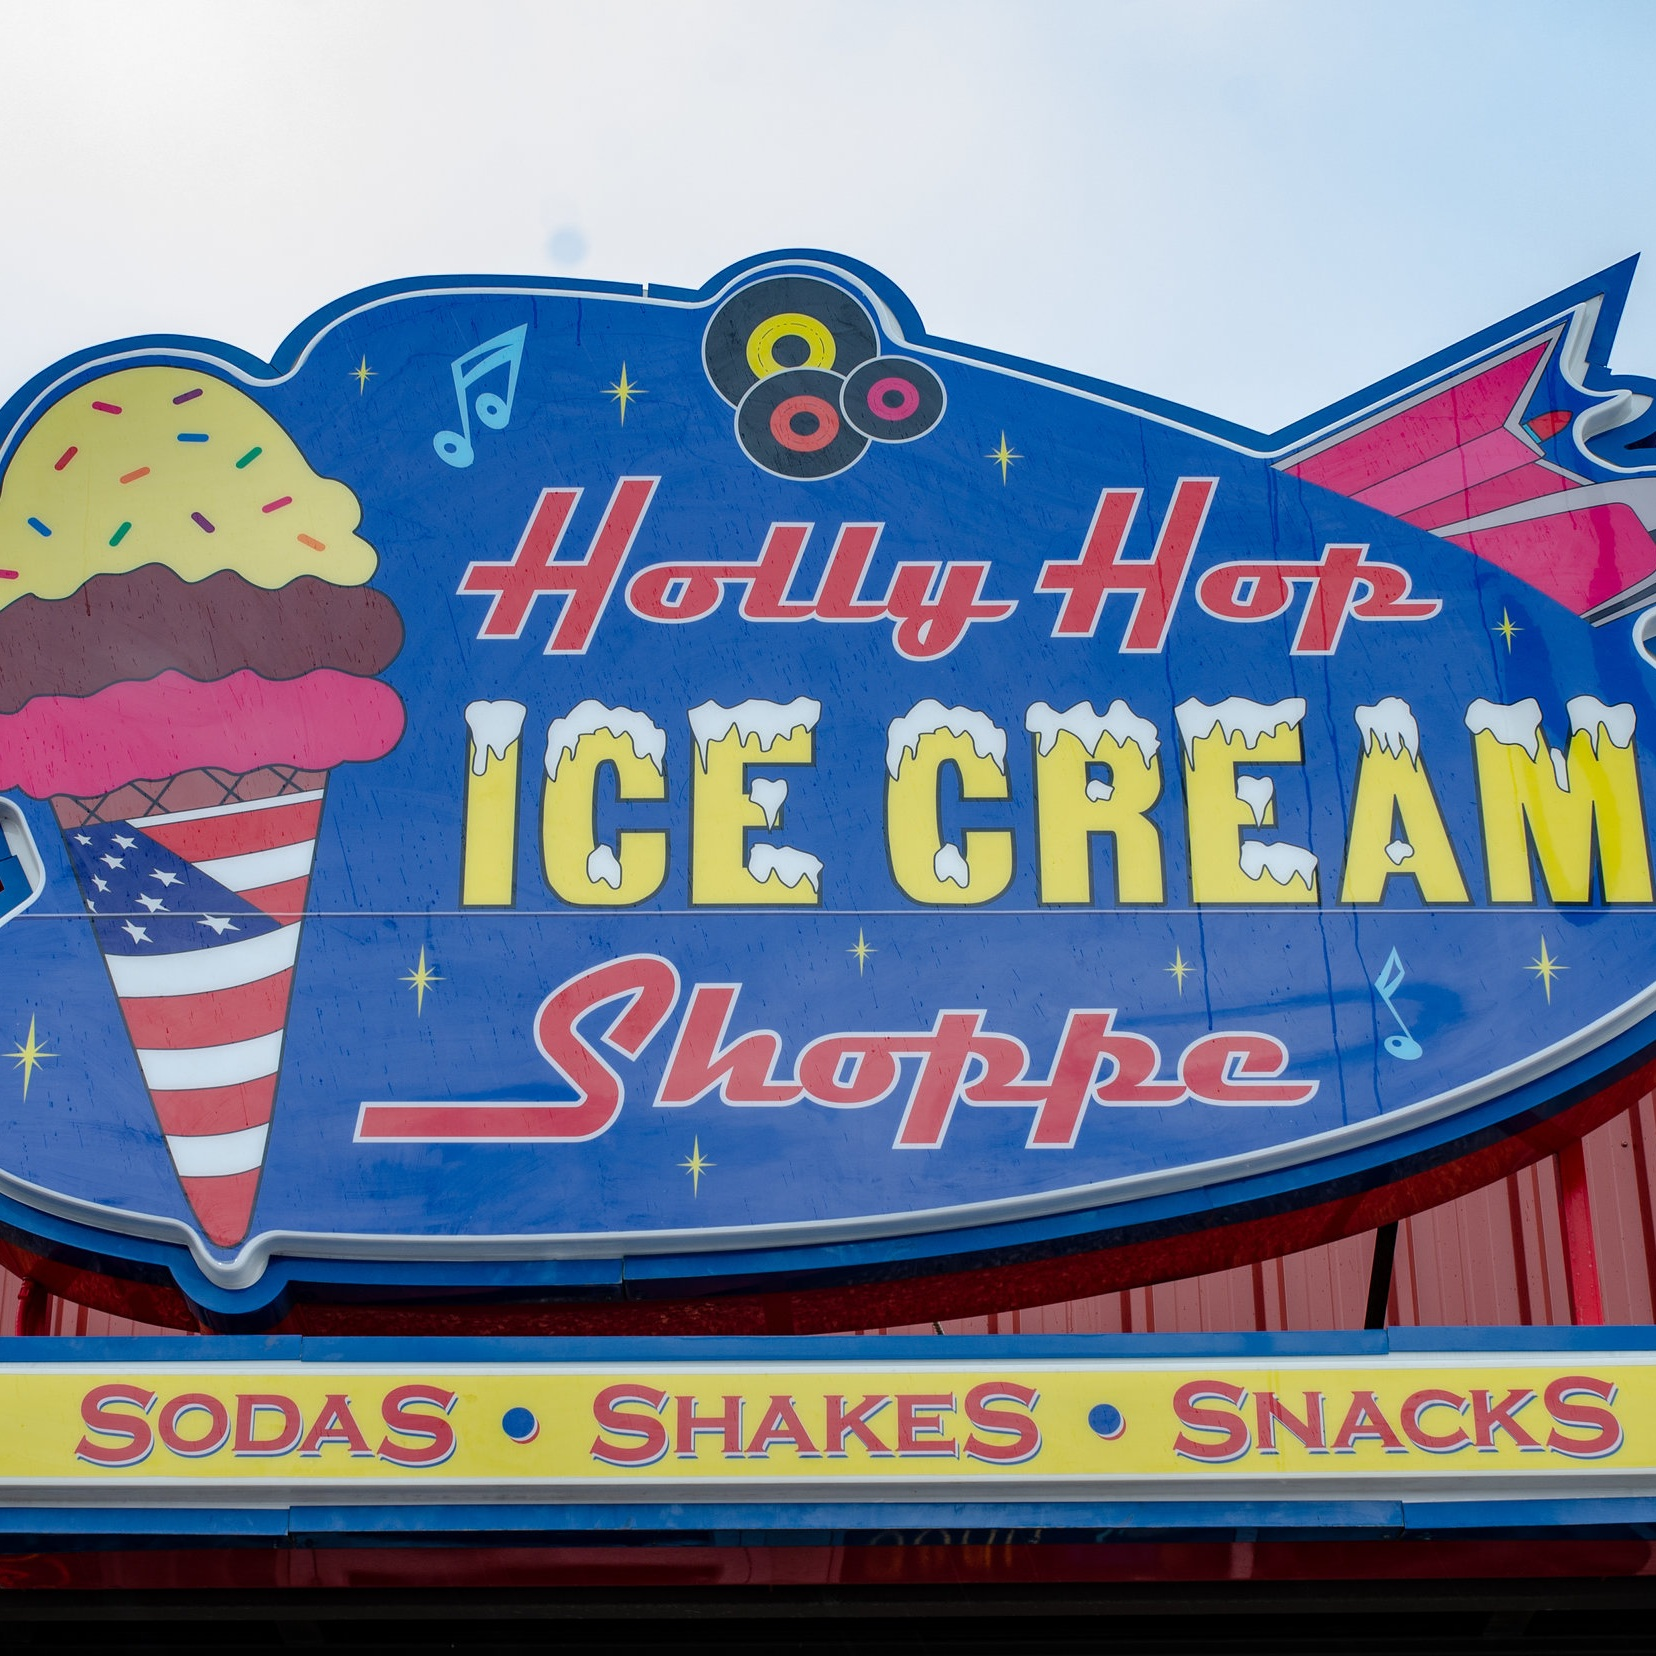 Holly Hop Ice Cream Shoppe - 10% Discount on All Items in the shop. (Not applicable to party packages)